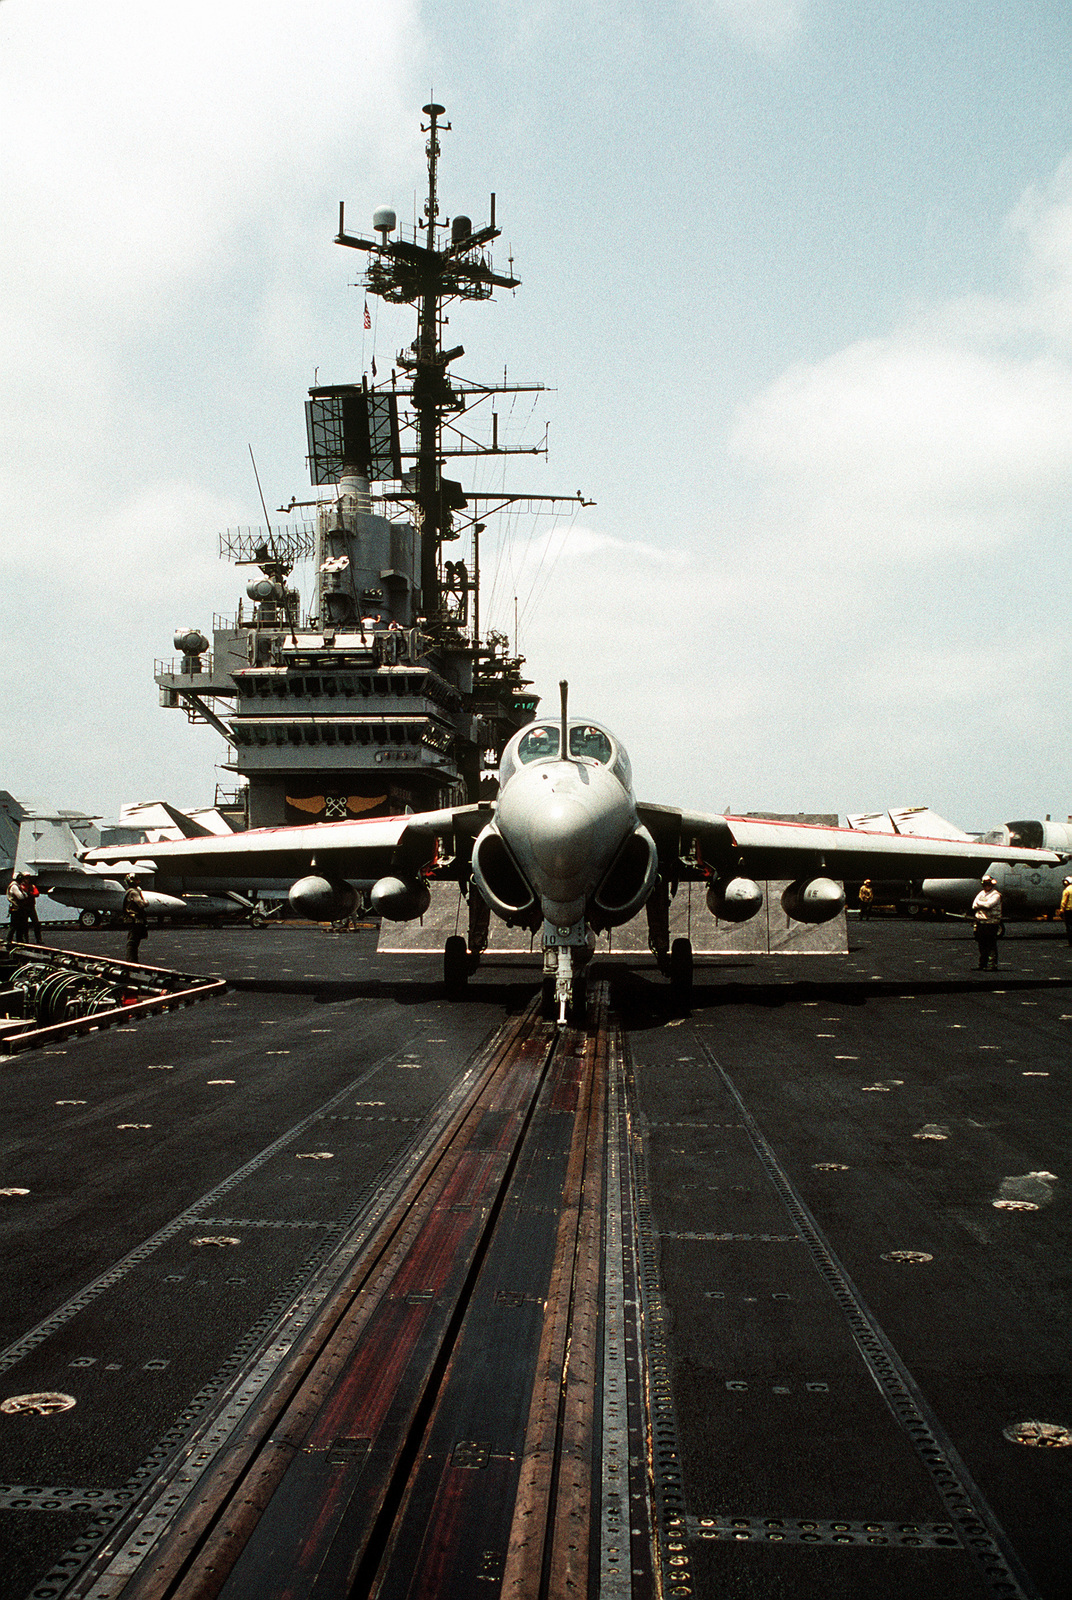 An Attack Squadron 196 (VA-196) A-6E Intruder aircraft sits ready for launch on the No. 1 catapult on the flight deck of the aircraft carrier USS INDEPENDENCE (CV-62) during Operation Desert Shield